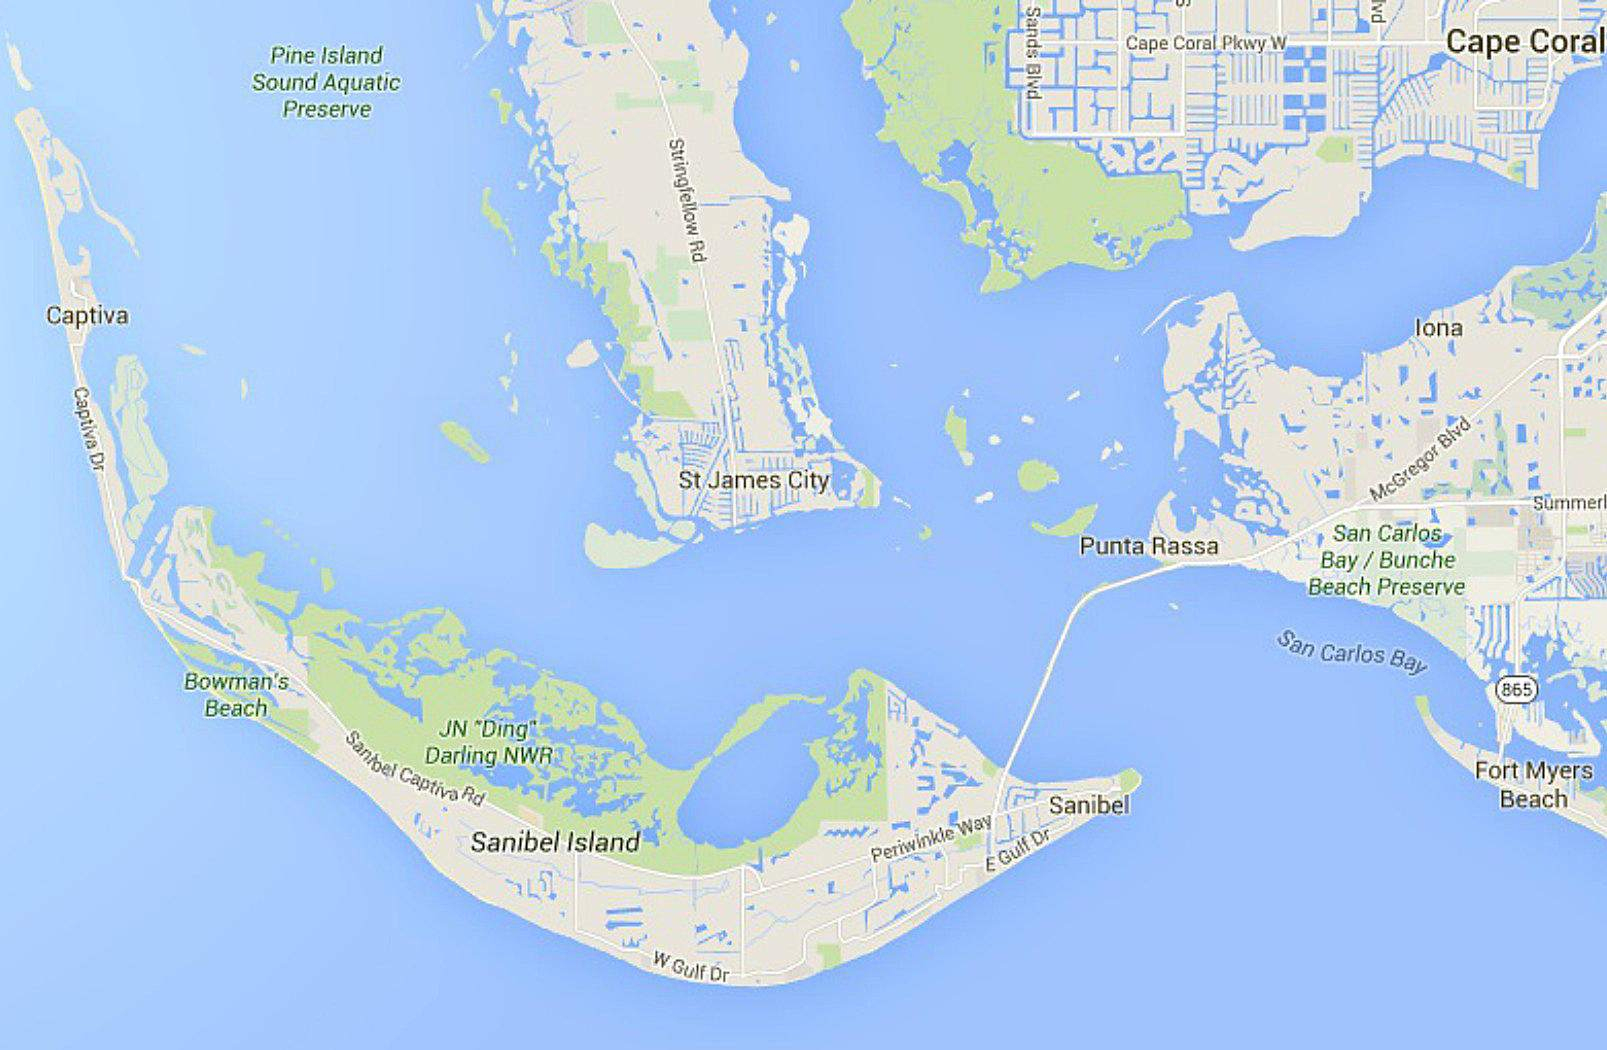 Maps Of Florida: Orlando, Tampa, Miami, Keys, And More - Siesta Key Florida Map